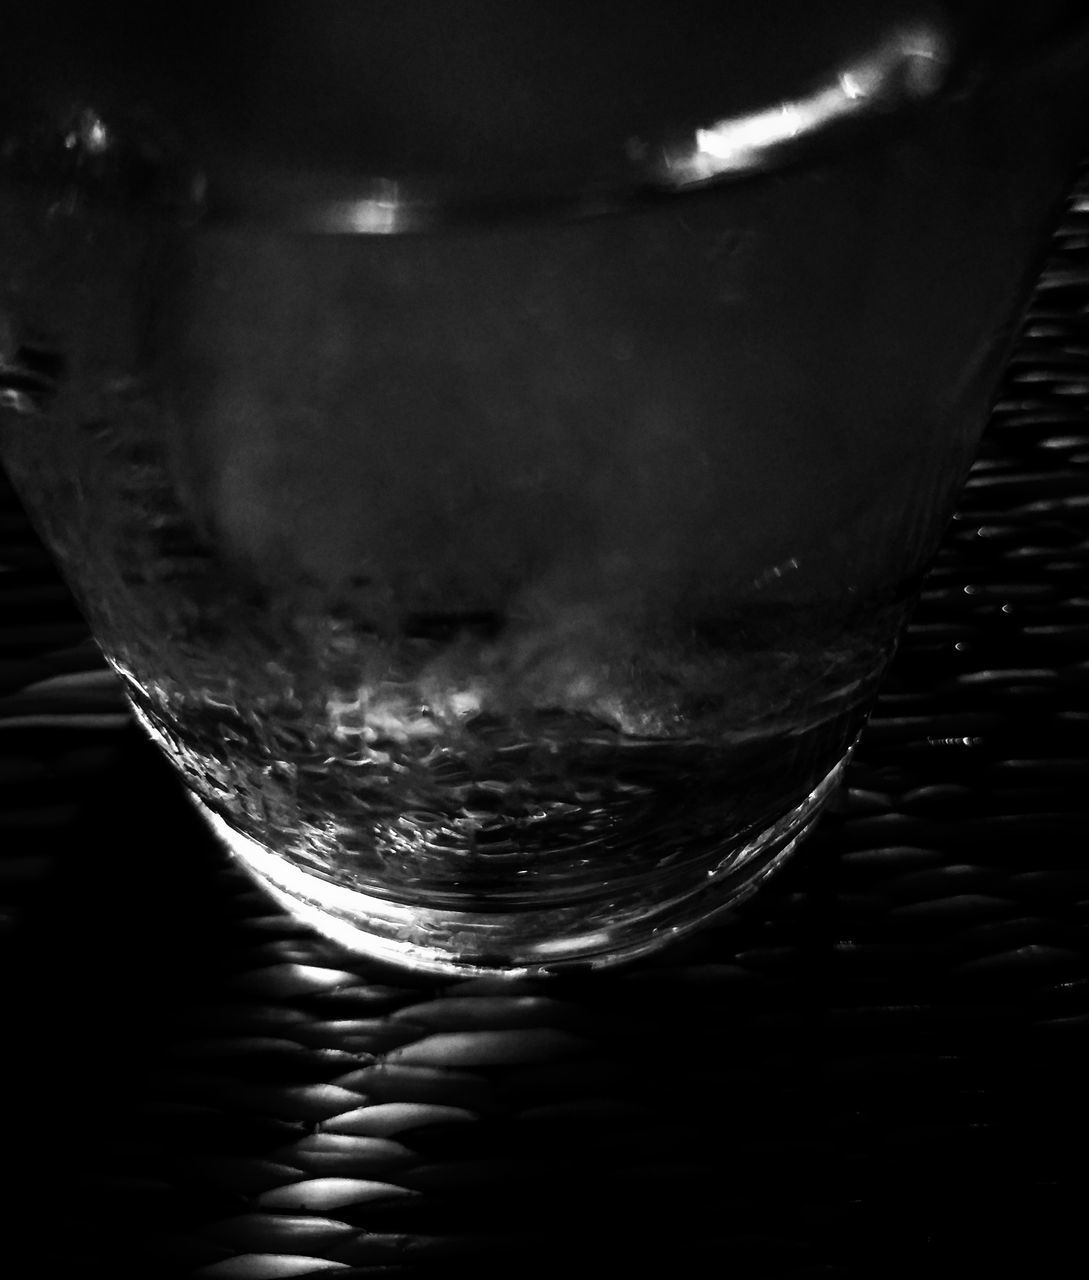 CLOSE-UP OF GLASS OF WATER